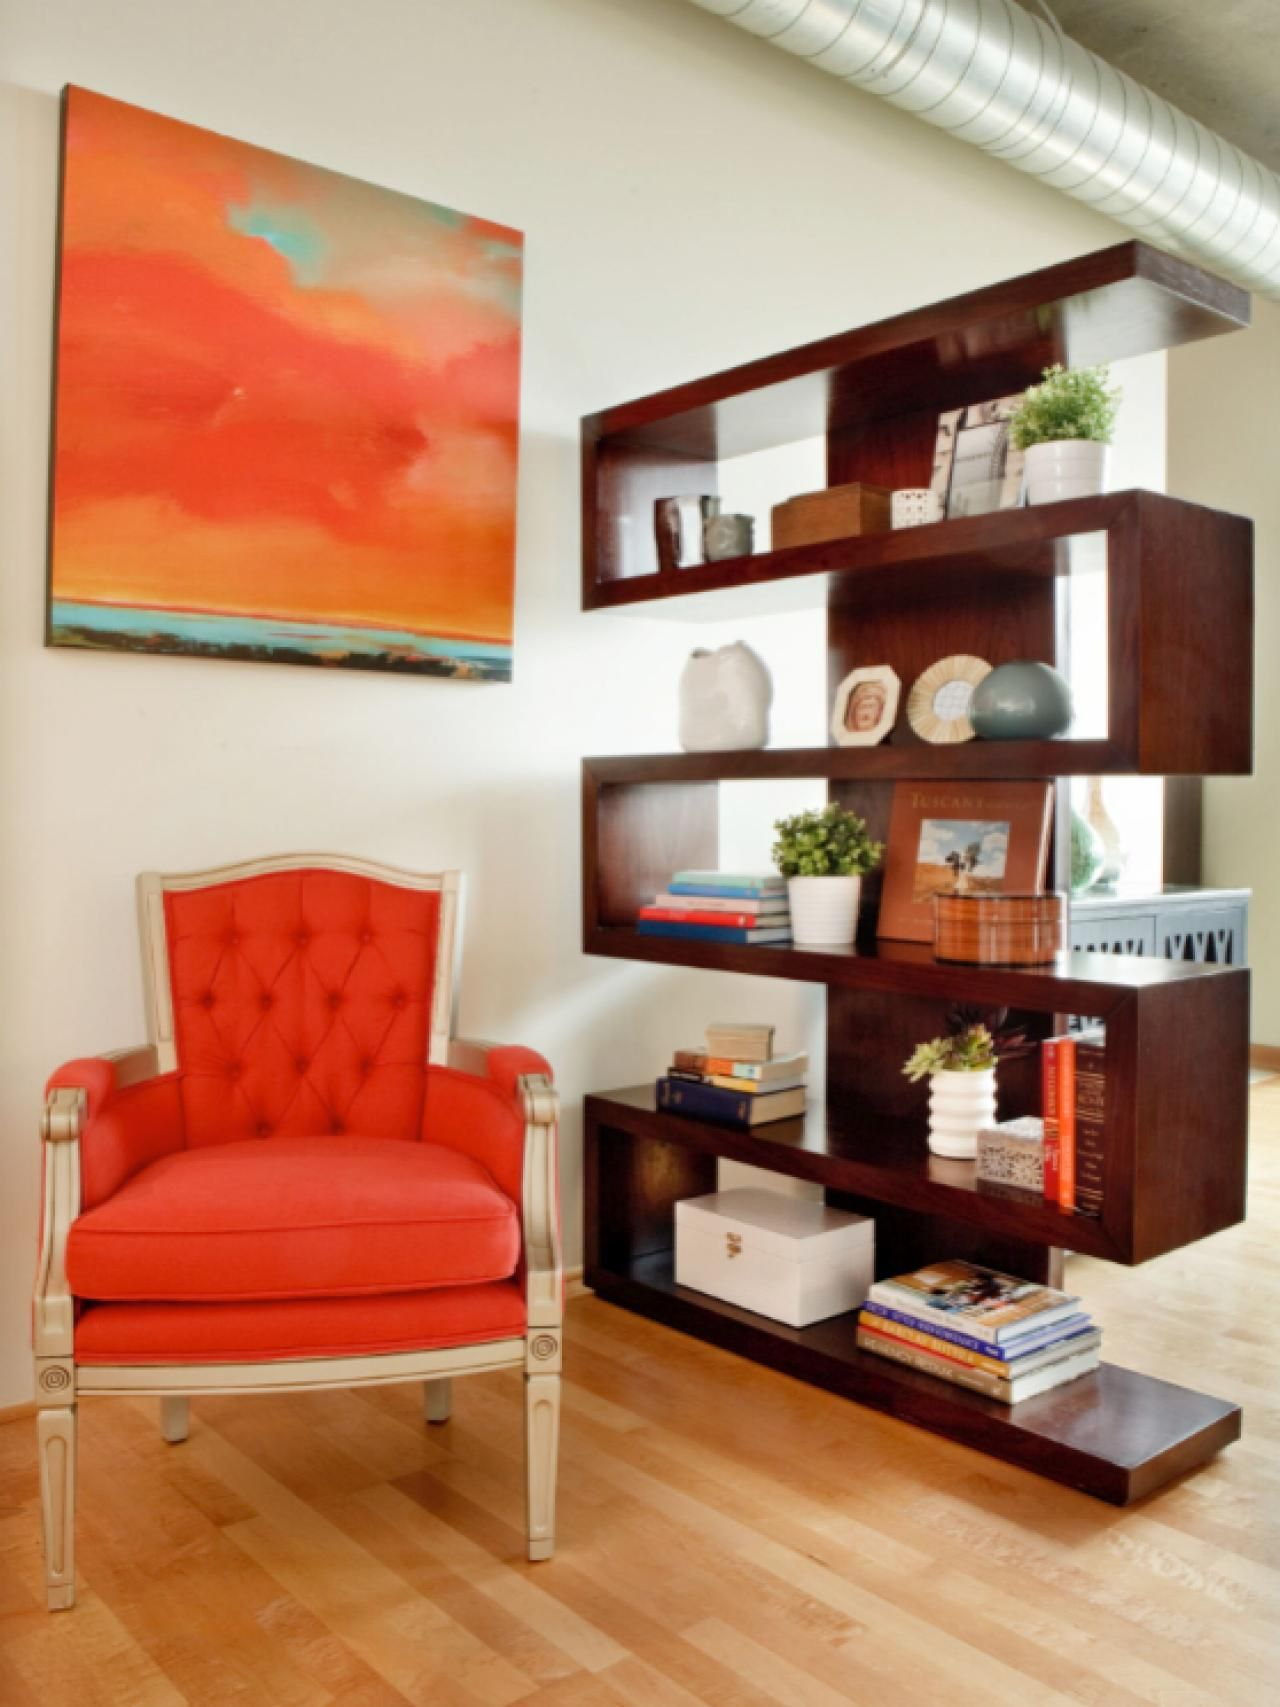 Make Space With Clever Room Dividers  Divider Hgtv And Room Beauteous Living Room Divider Design Ideas Inspiration Design